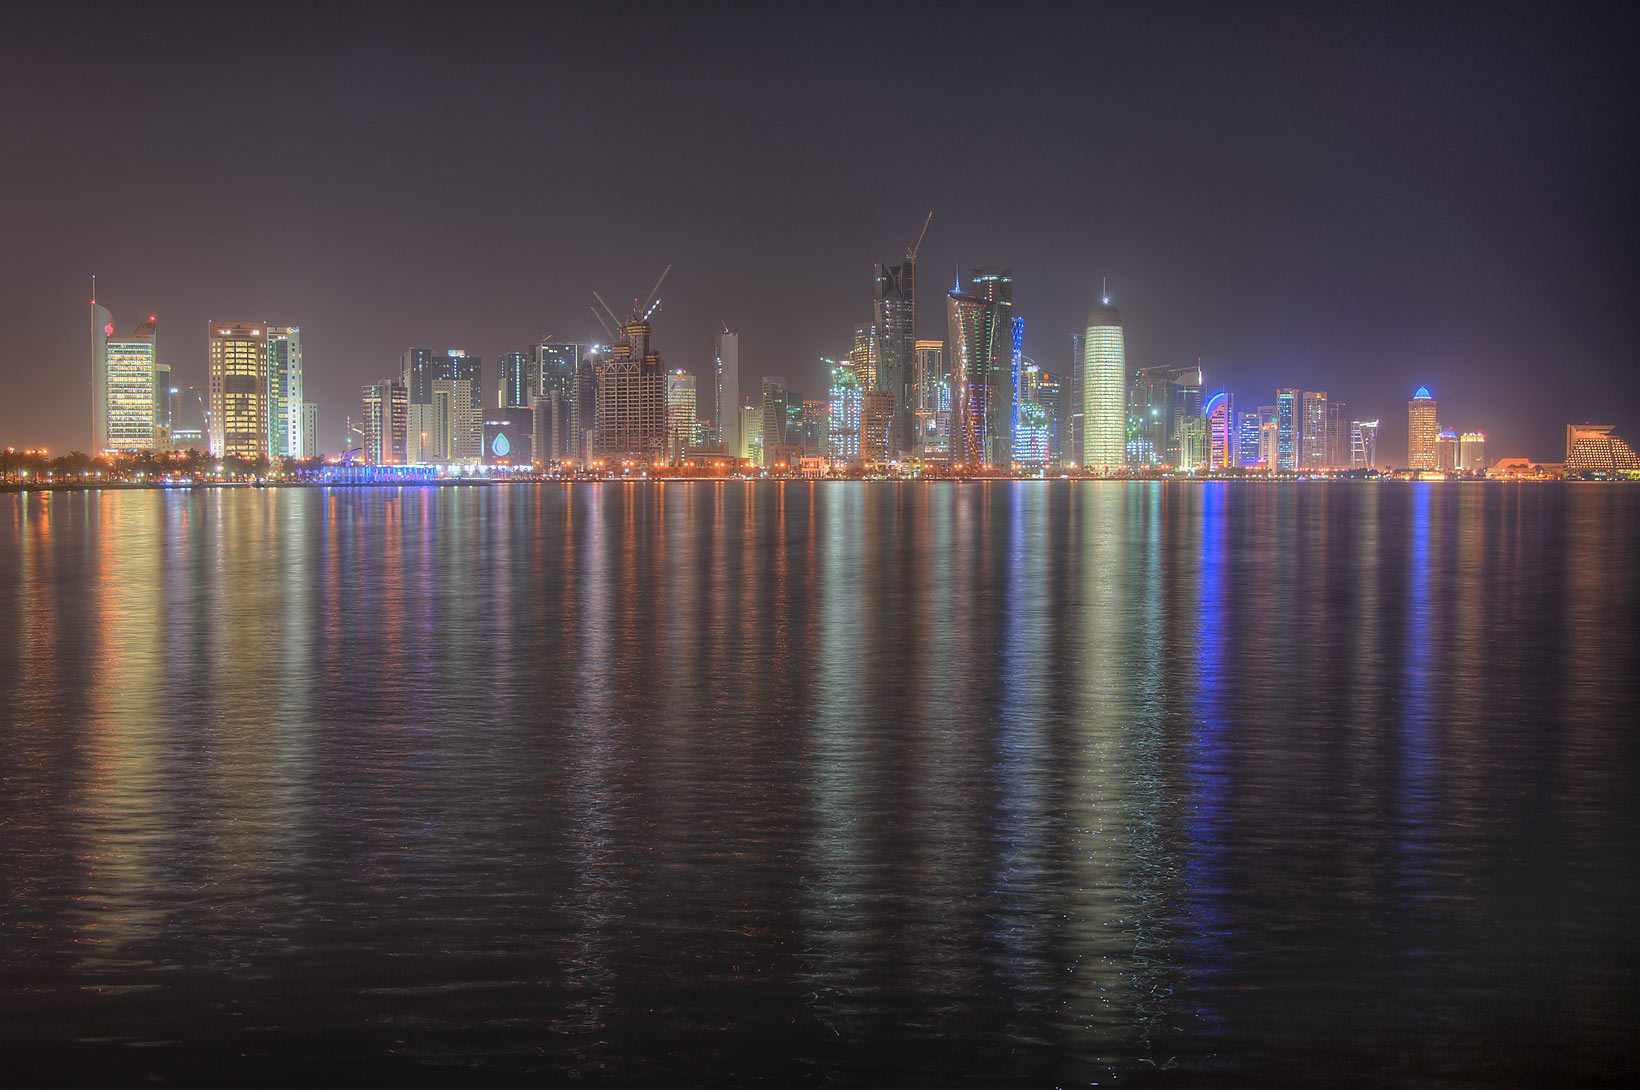 West Bay lights from Corniche at evening. Doha, Qatar